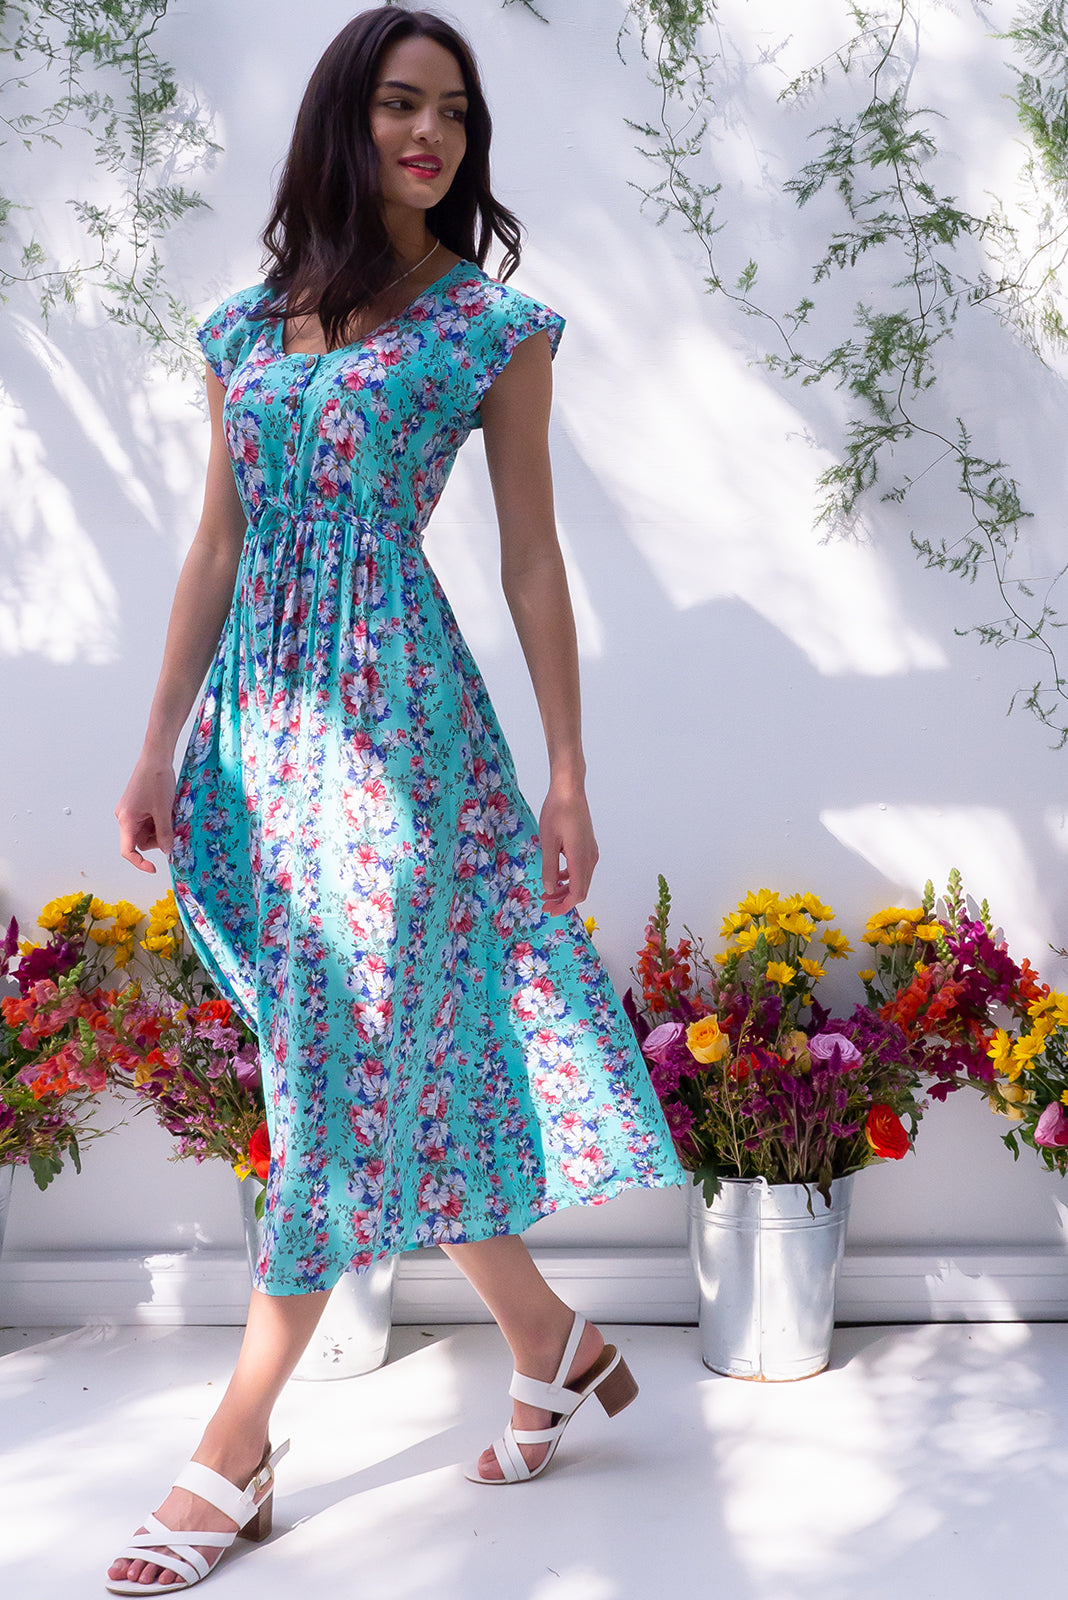 The Juniper Sky Trellis Maxi Dress features functional button down detailing to waistline, cap sleeves, side pockets, adjustable drawstring waist and 100% rayon in turquoise base with vintage floral vine print in white, pink and blue.